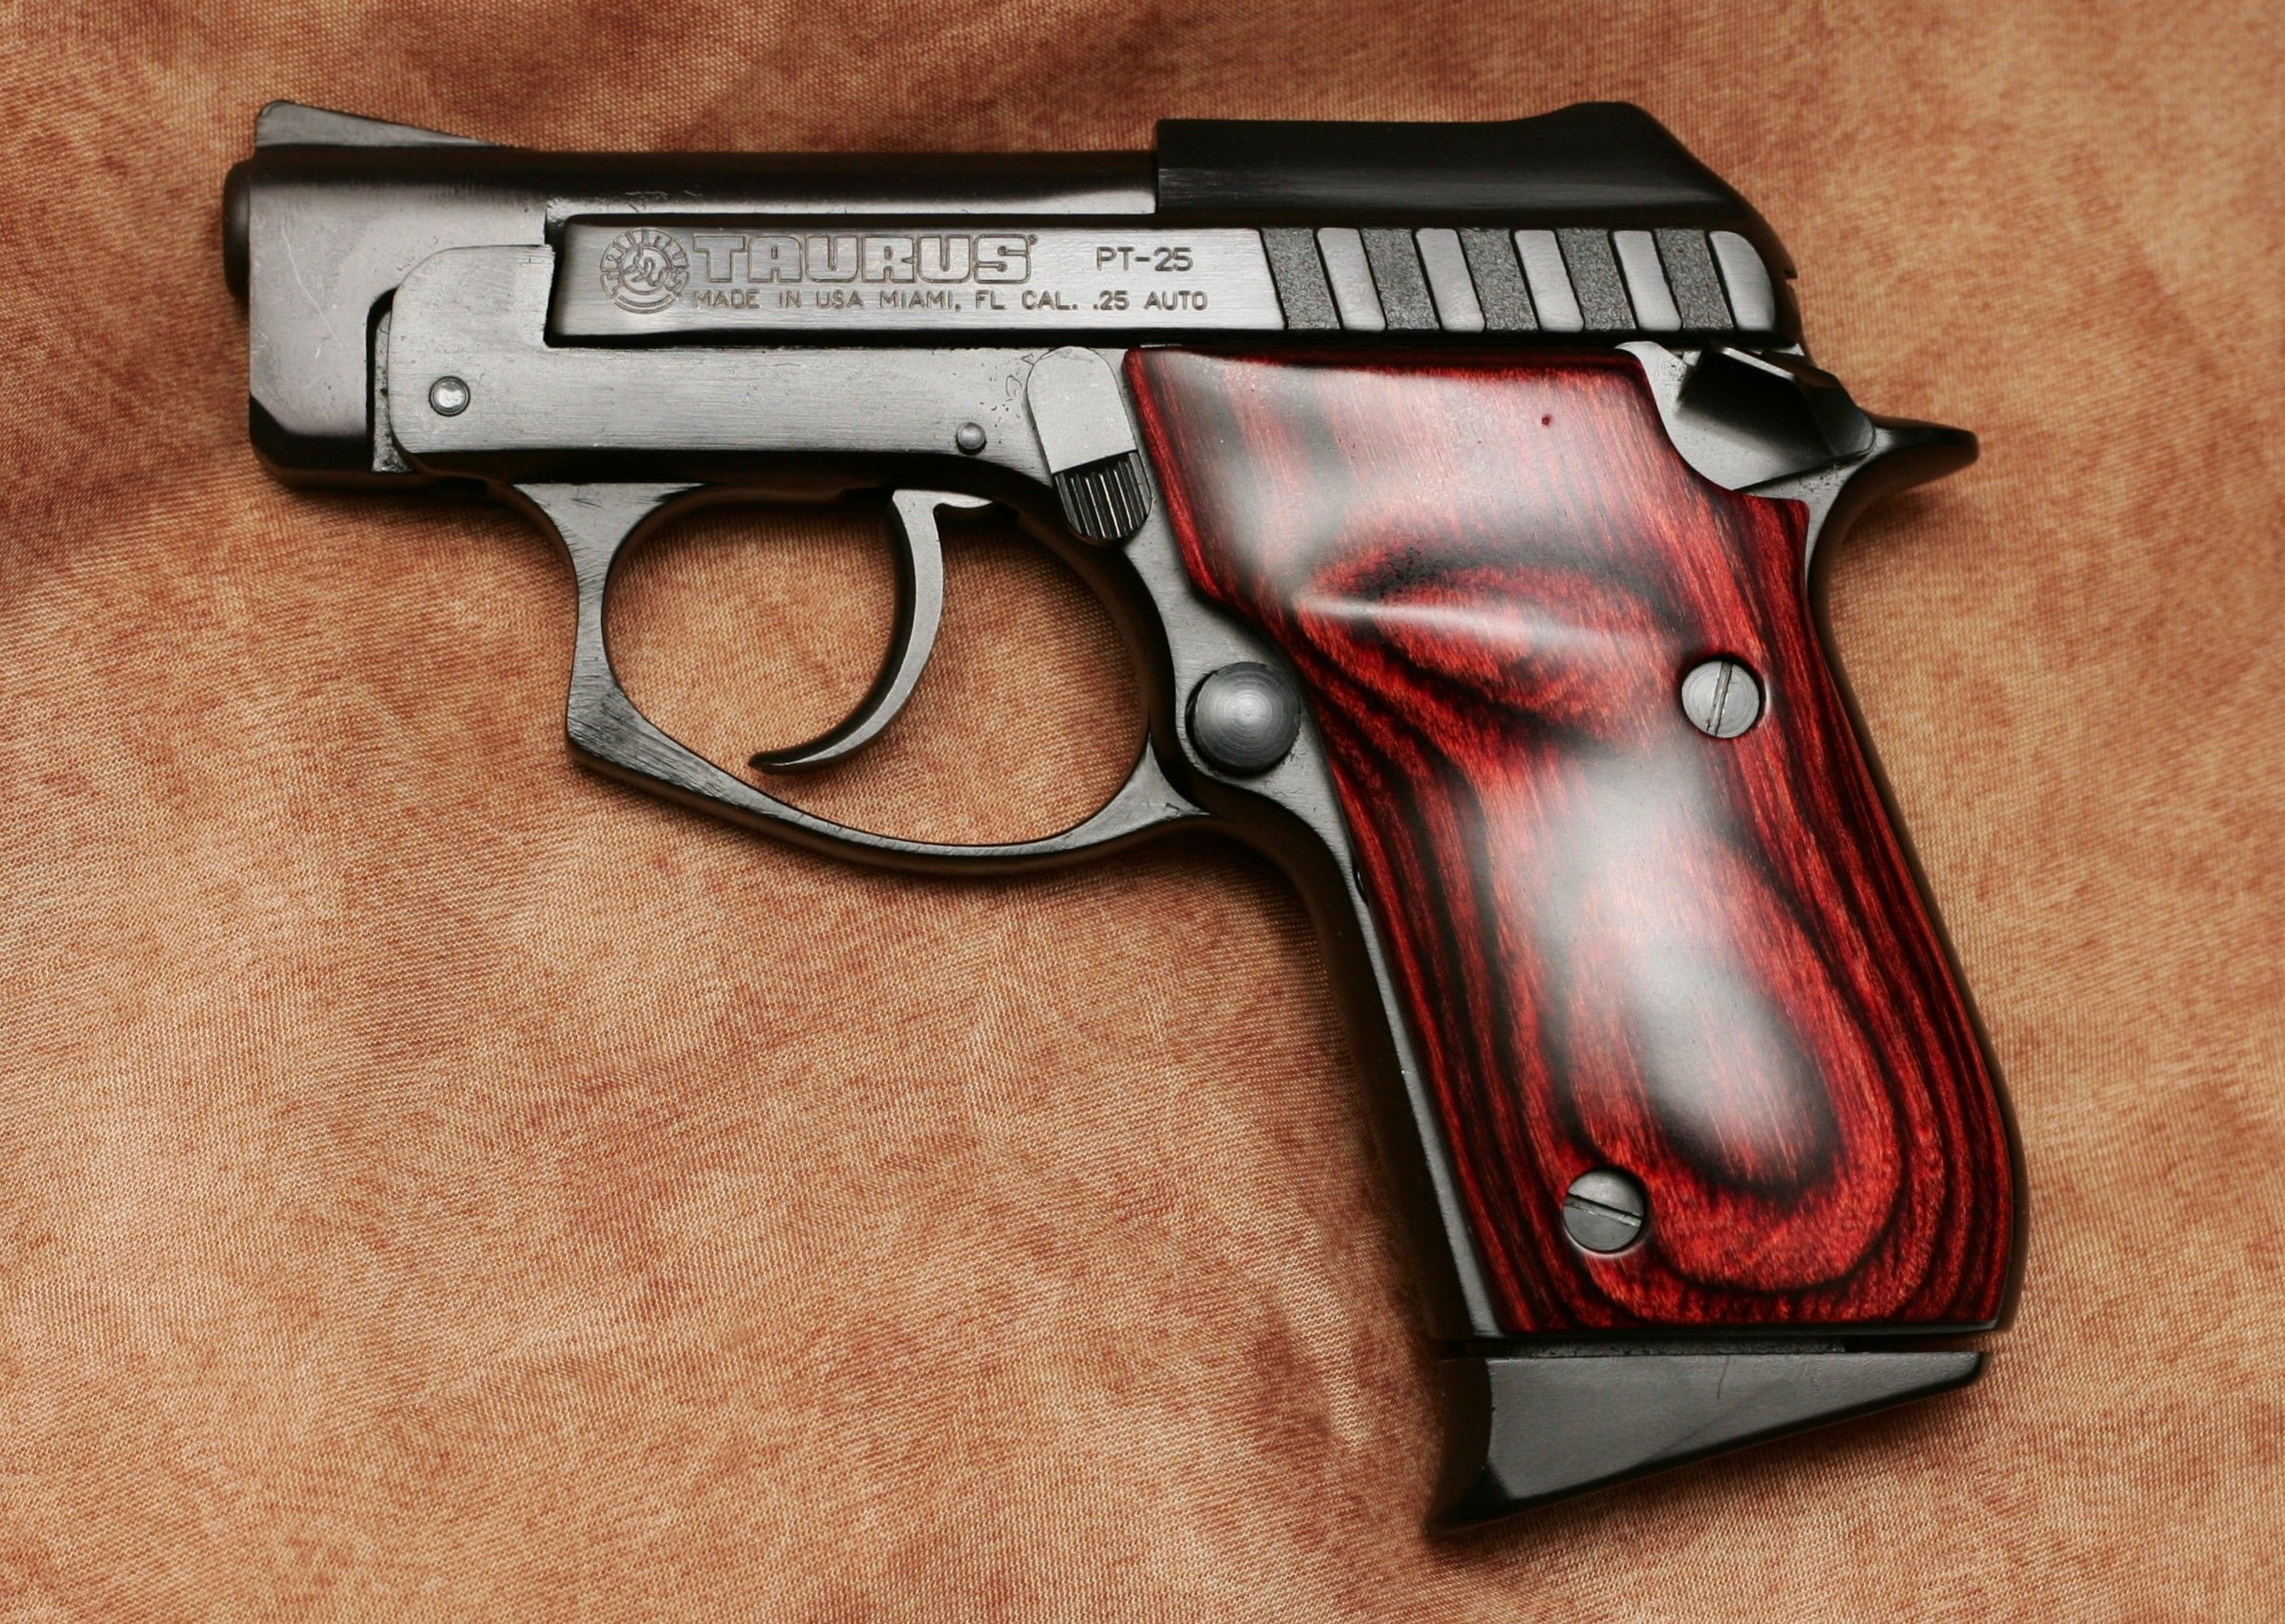 Taurus Pt 25 My Firearm Related Photos Past And Present Hand